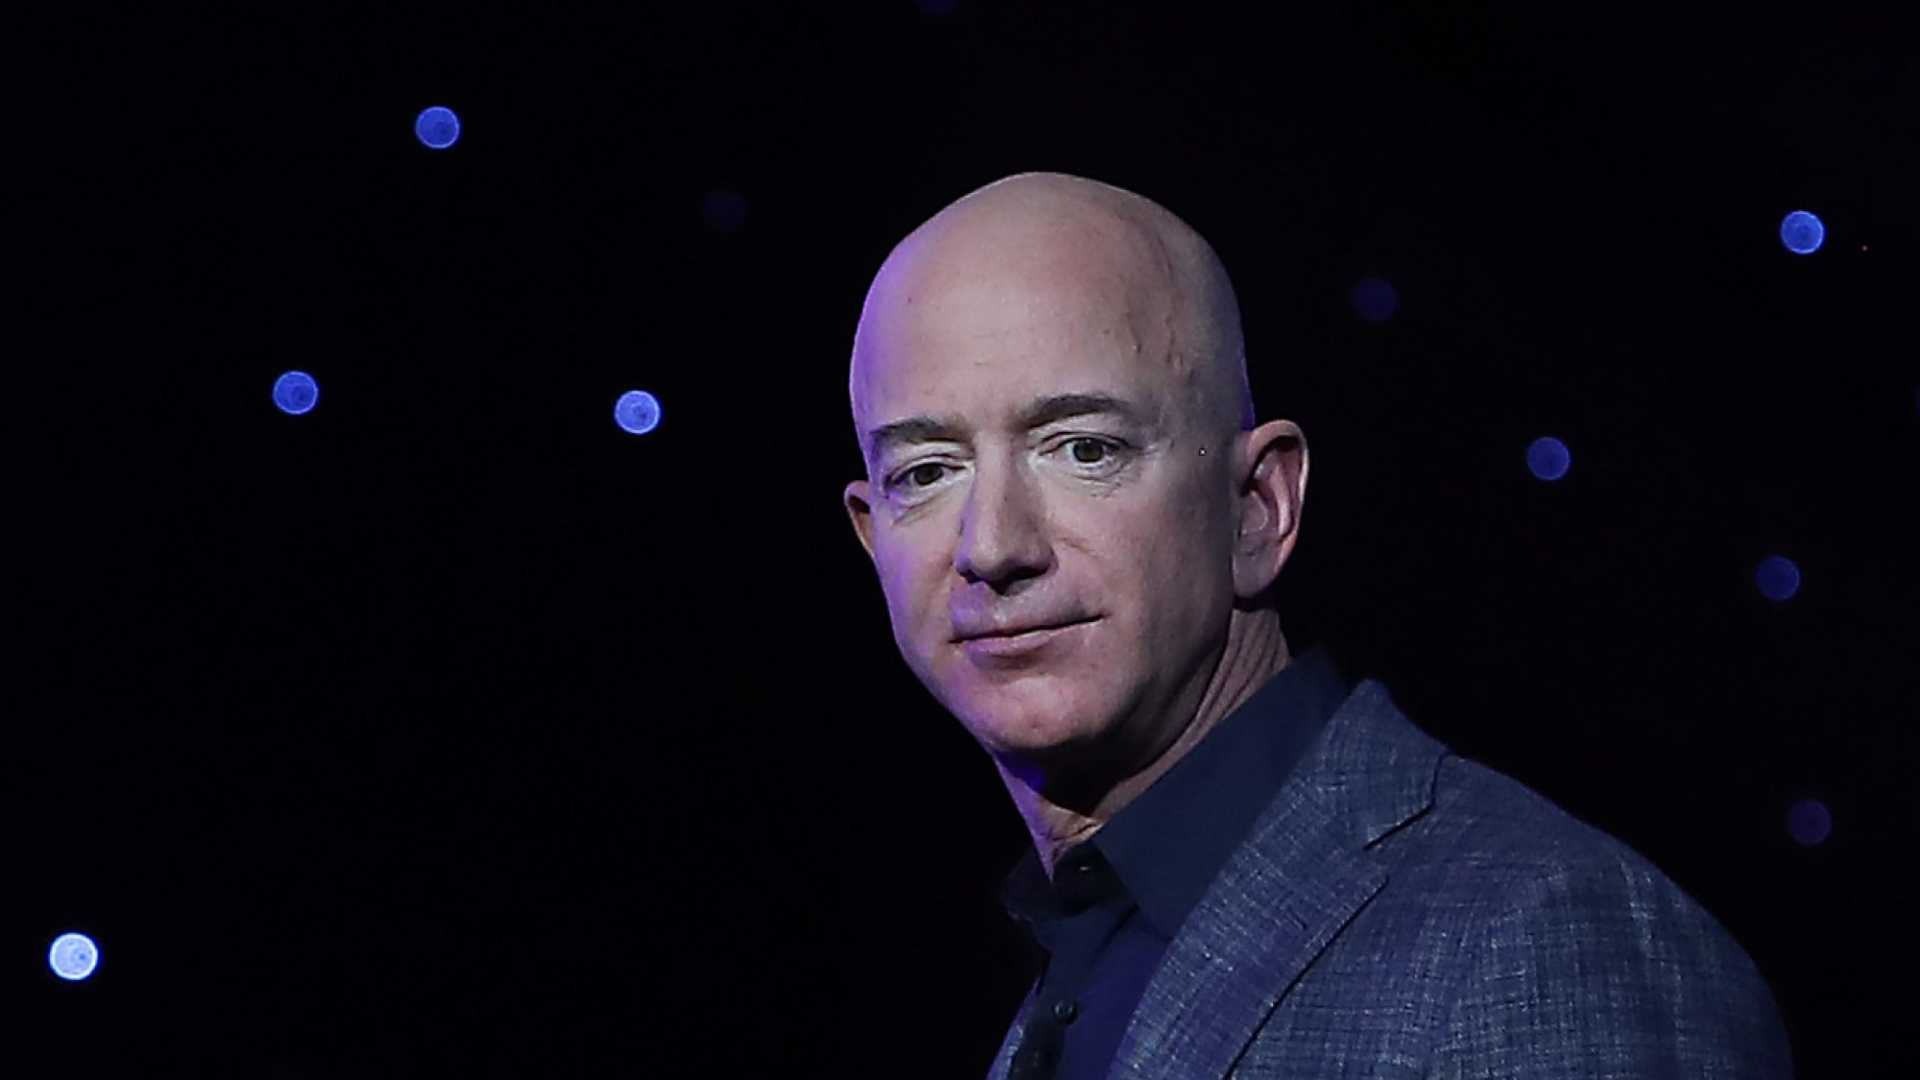 Jeff Bezos Just Posted a 4-Page Letter to Amazon Employees on Instagram. It Announces a Drastic Change for the Company